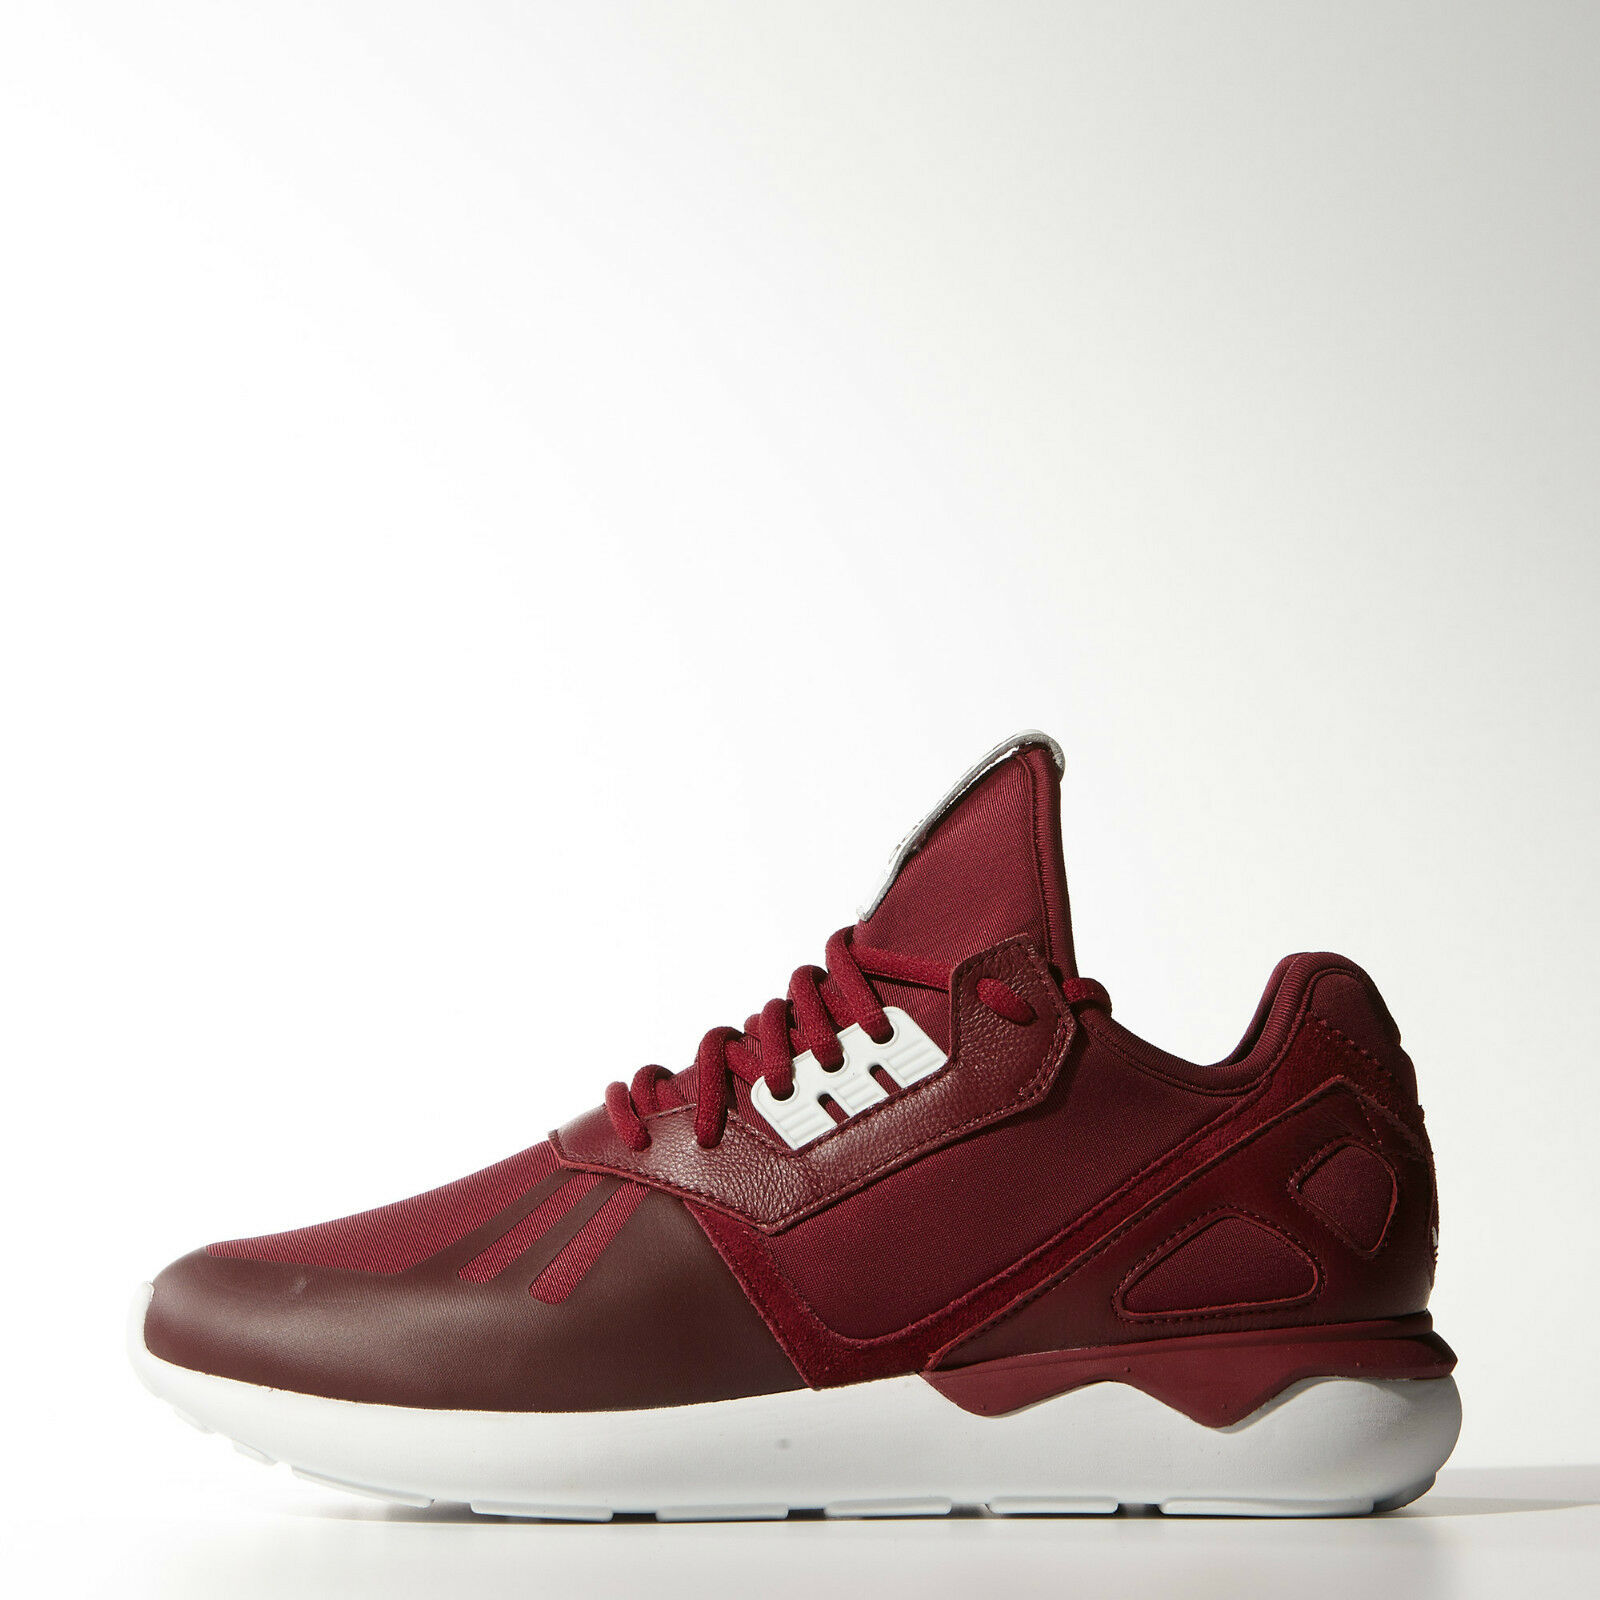 Adidas Originals Tubular Runner Mens Claasic Trainers shoes Burgundy White